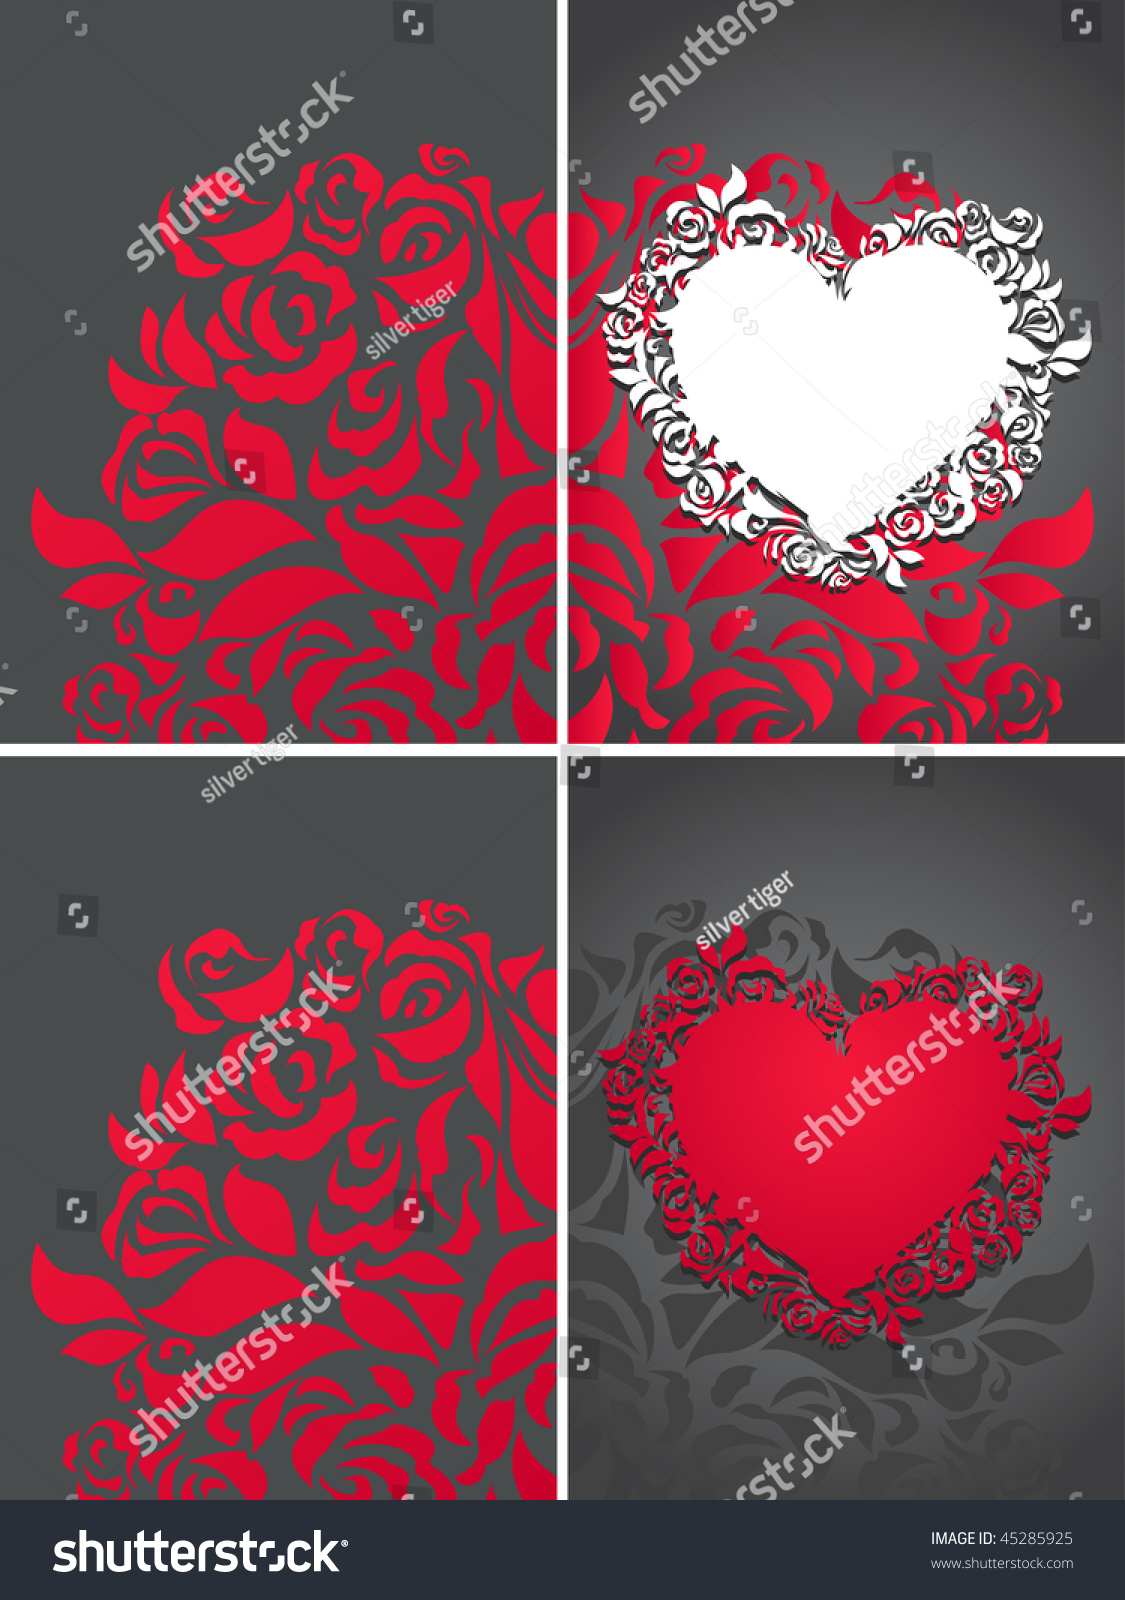 Gothic Heart And Roses Petals Greeting Cards Backgrounds